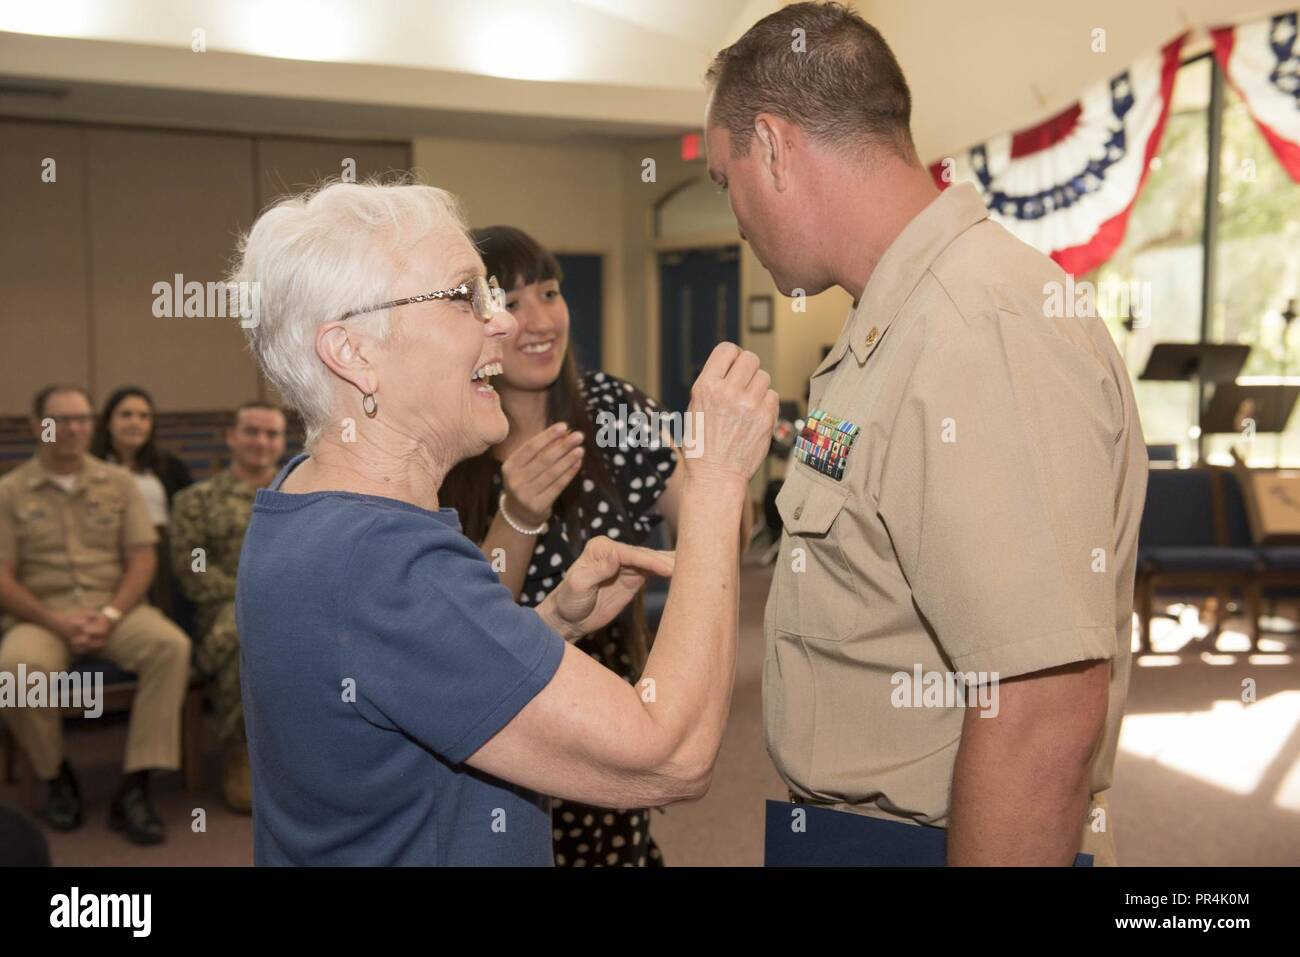 KINGS BAY, Georgia (Sept. 14, 2018) Chief Master at Arms Joshua Vanorder is pinned with his anchors by his family during Naval Submarine Base Kings Bay's 2018 chief petty officer pinning ceremony.  The base is home to six of the Ohio-class ballistic-missile submarines that make up the most survivable leg of the nuclear missile triad. - Stock Image